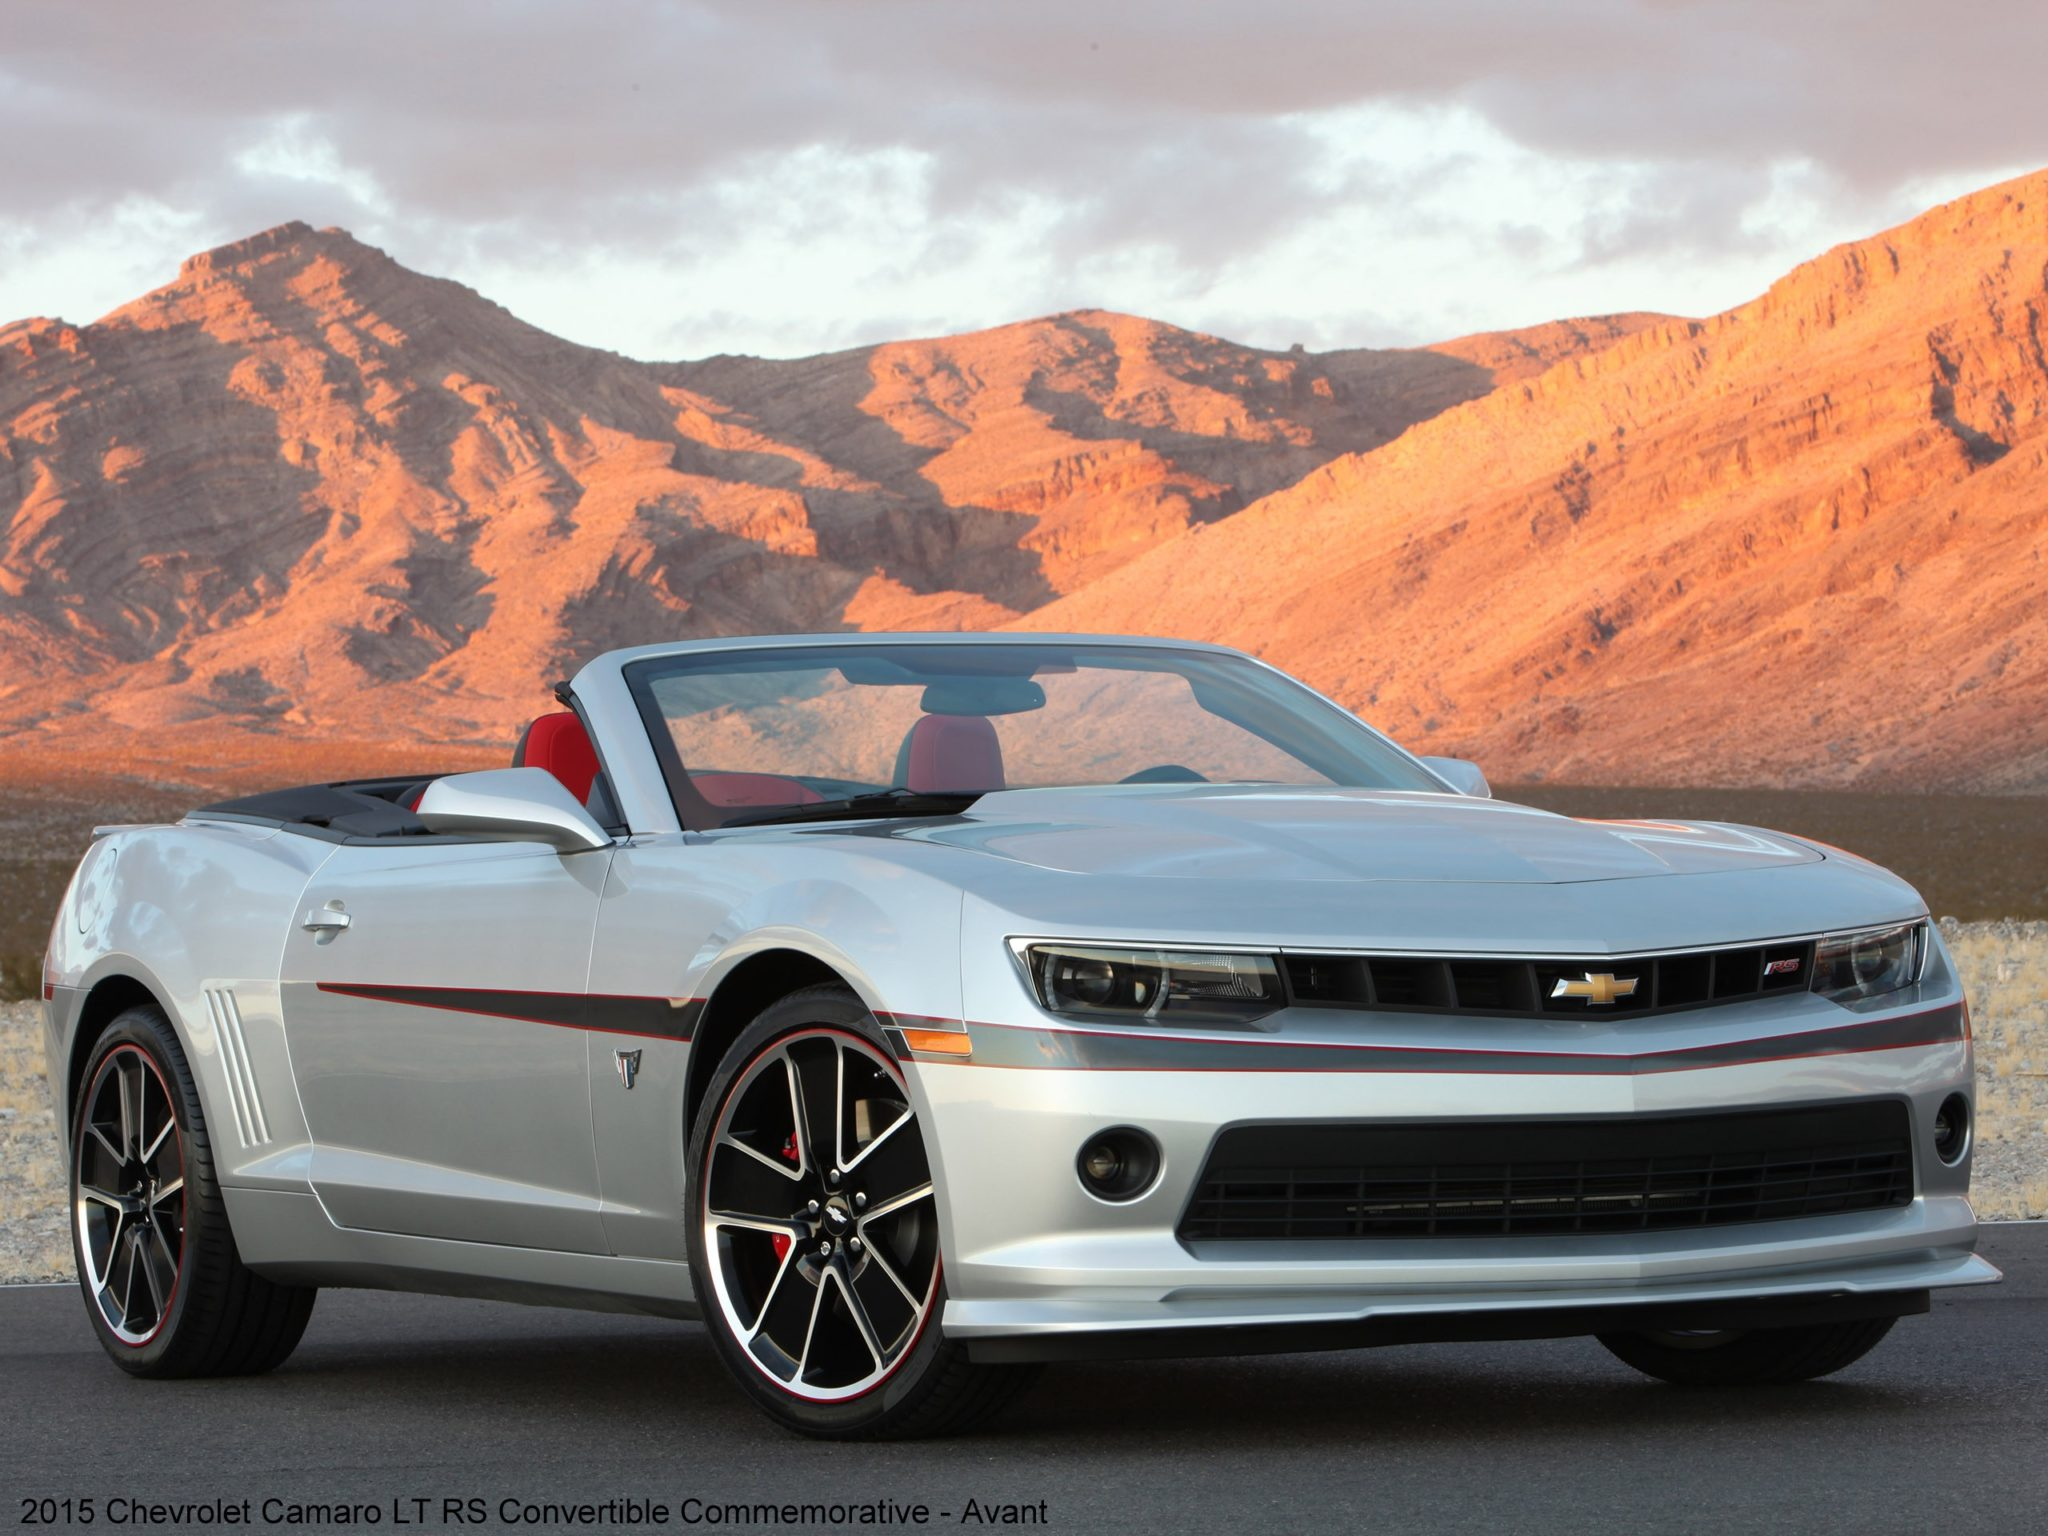 2015 Chevrolet Camaro LT RS Convertible Commemorative Edition